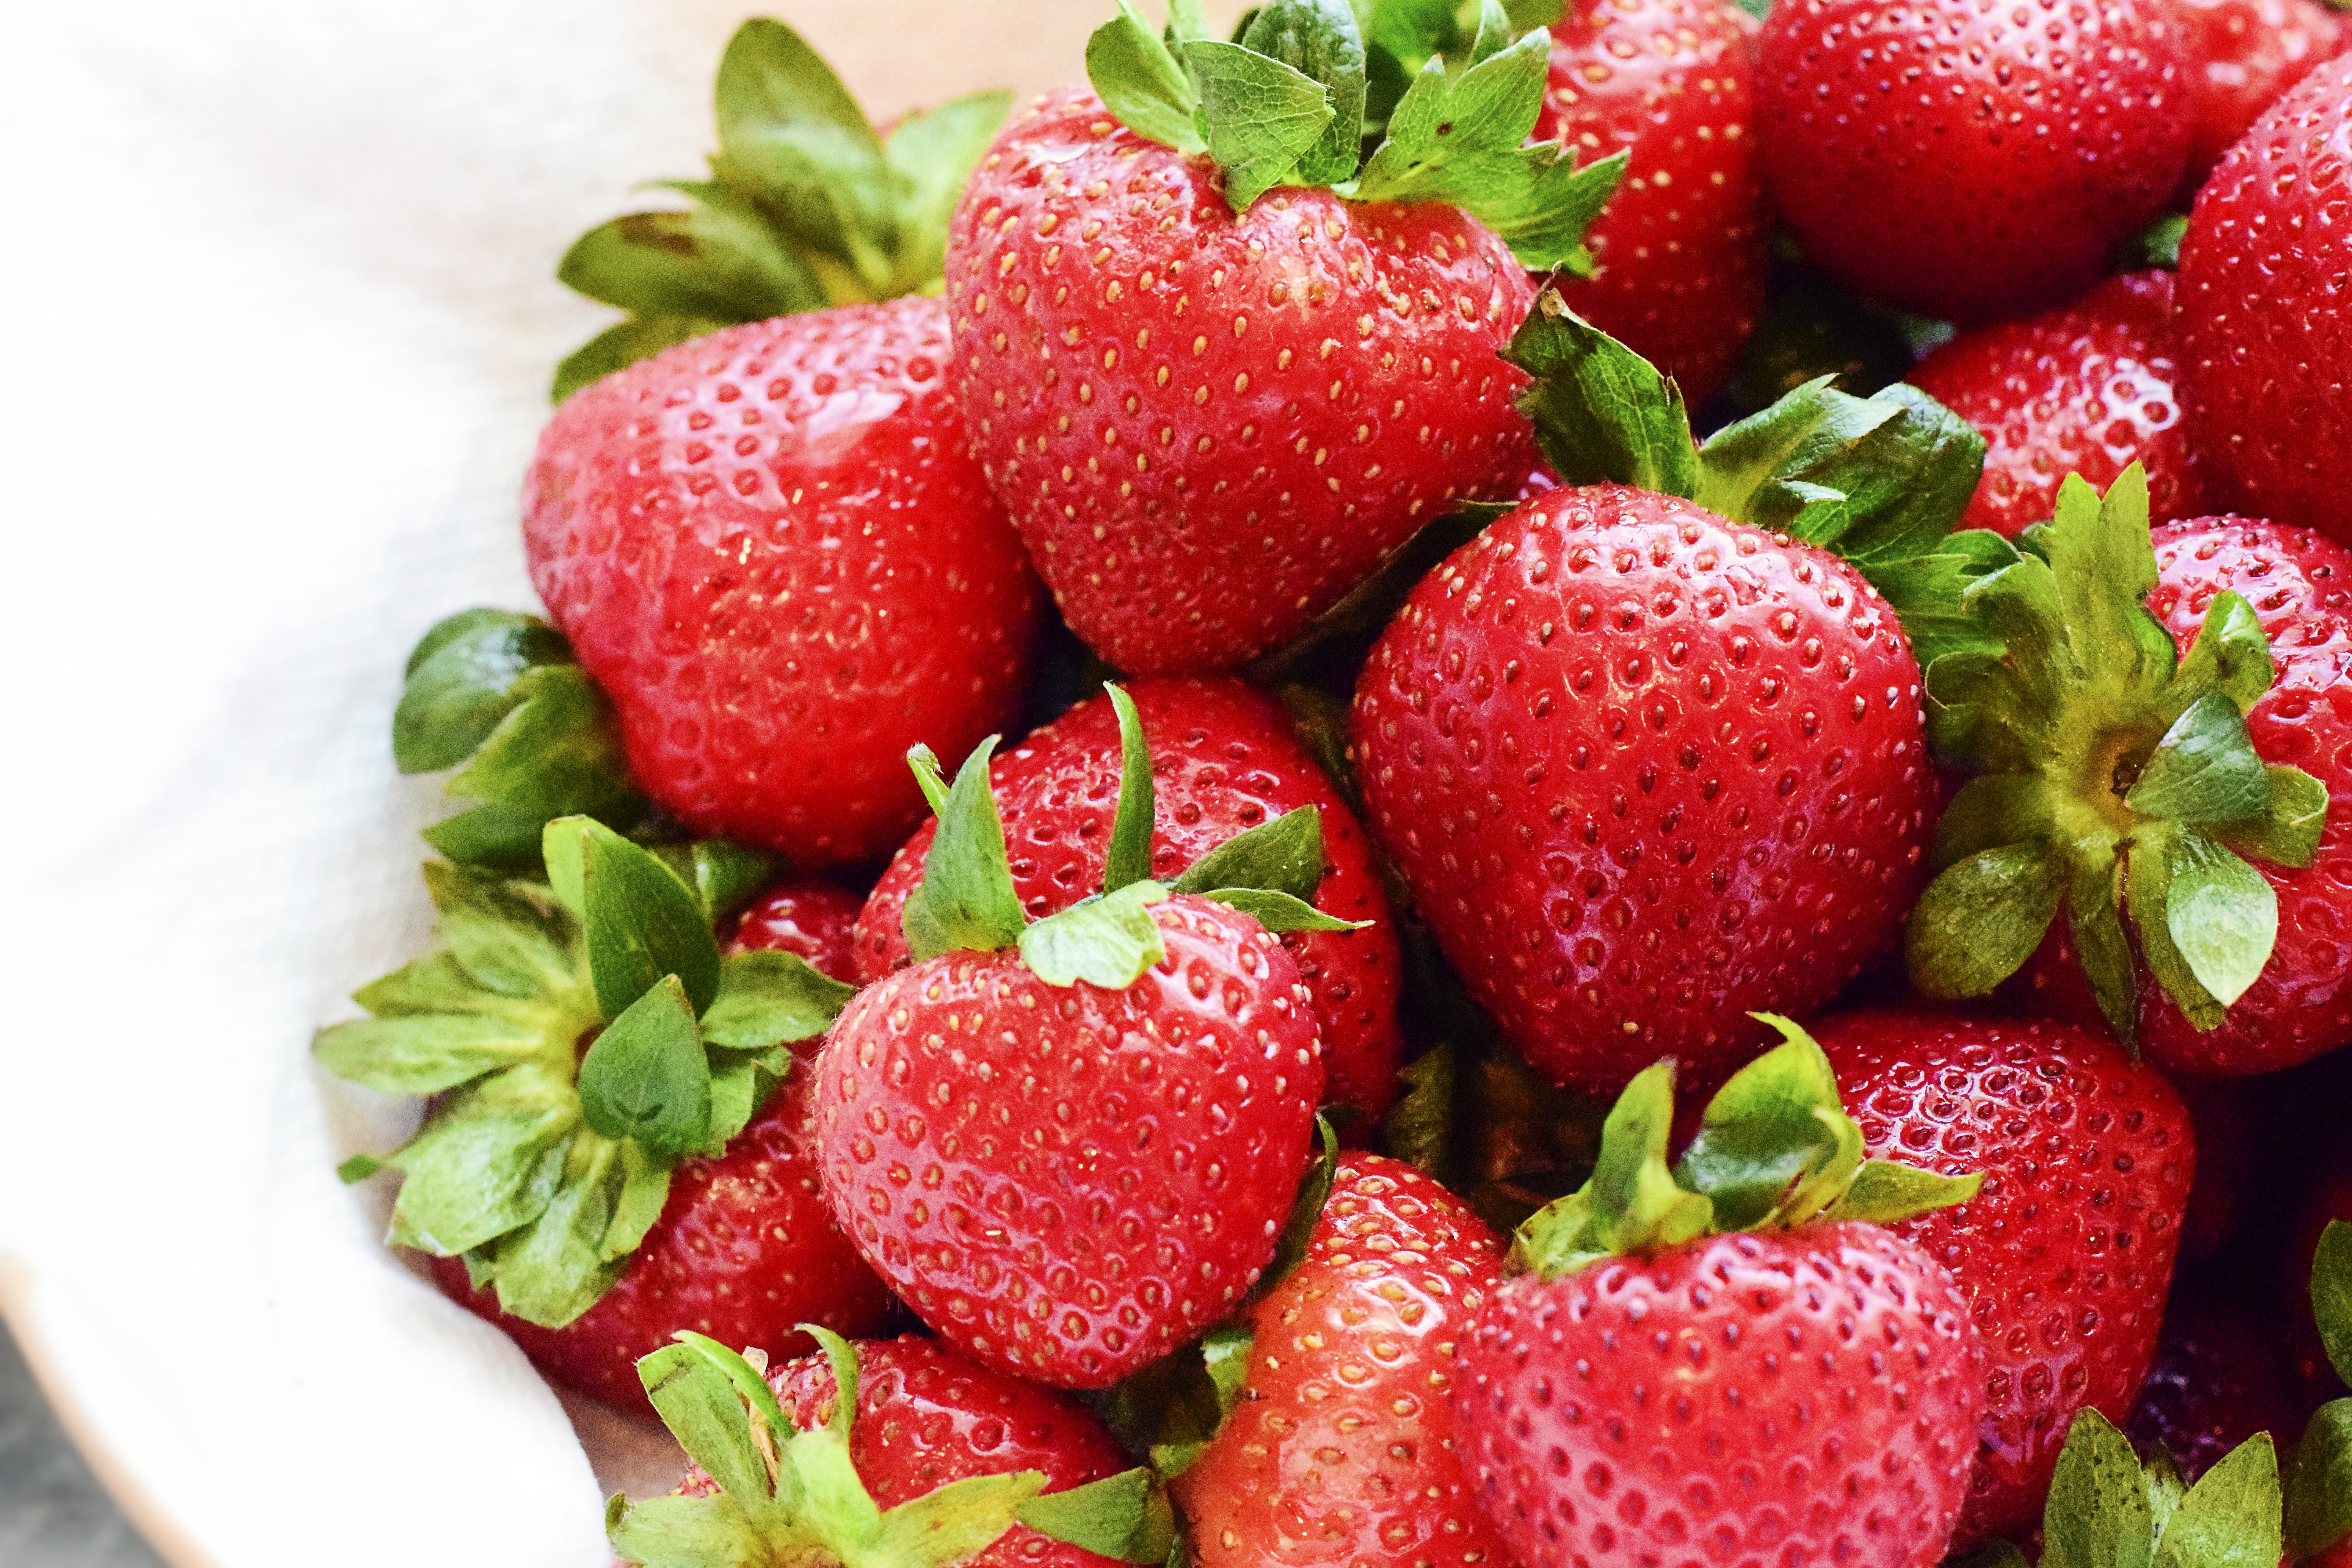 Bowl of freshly washed strawberries ready to eat